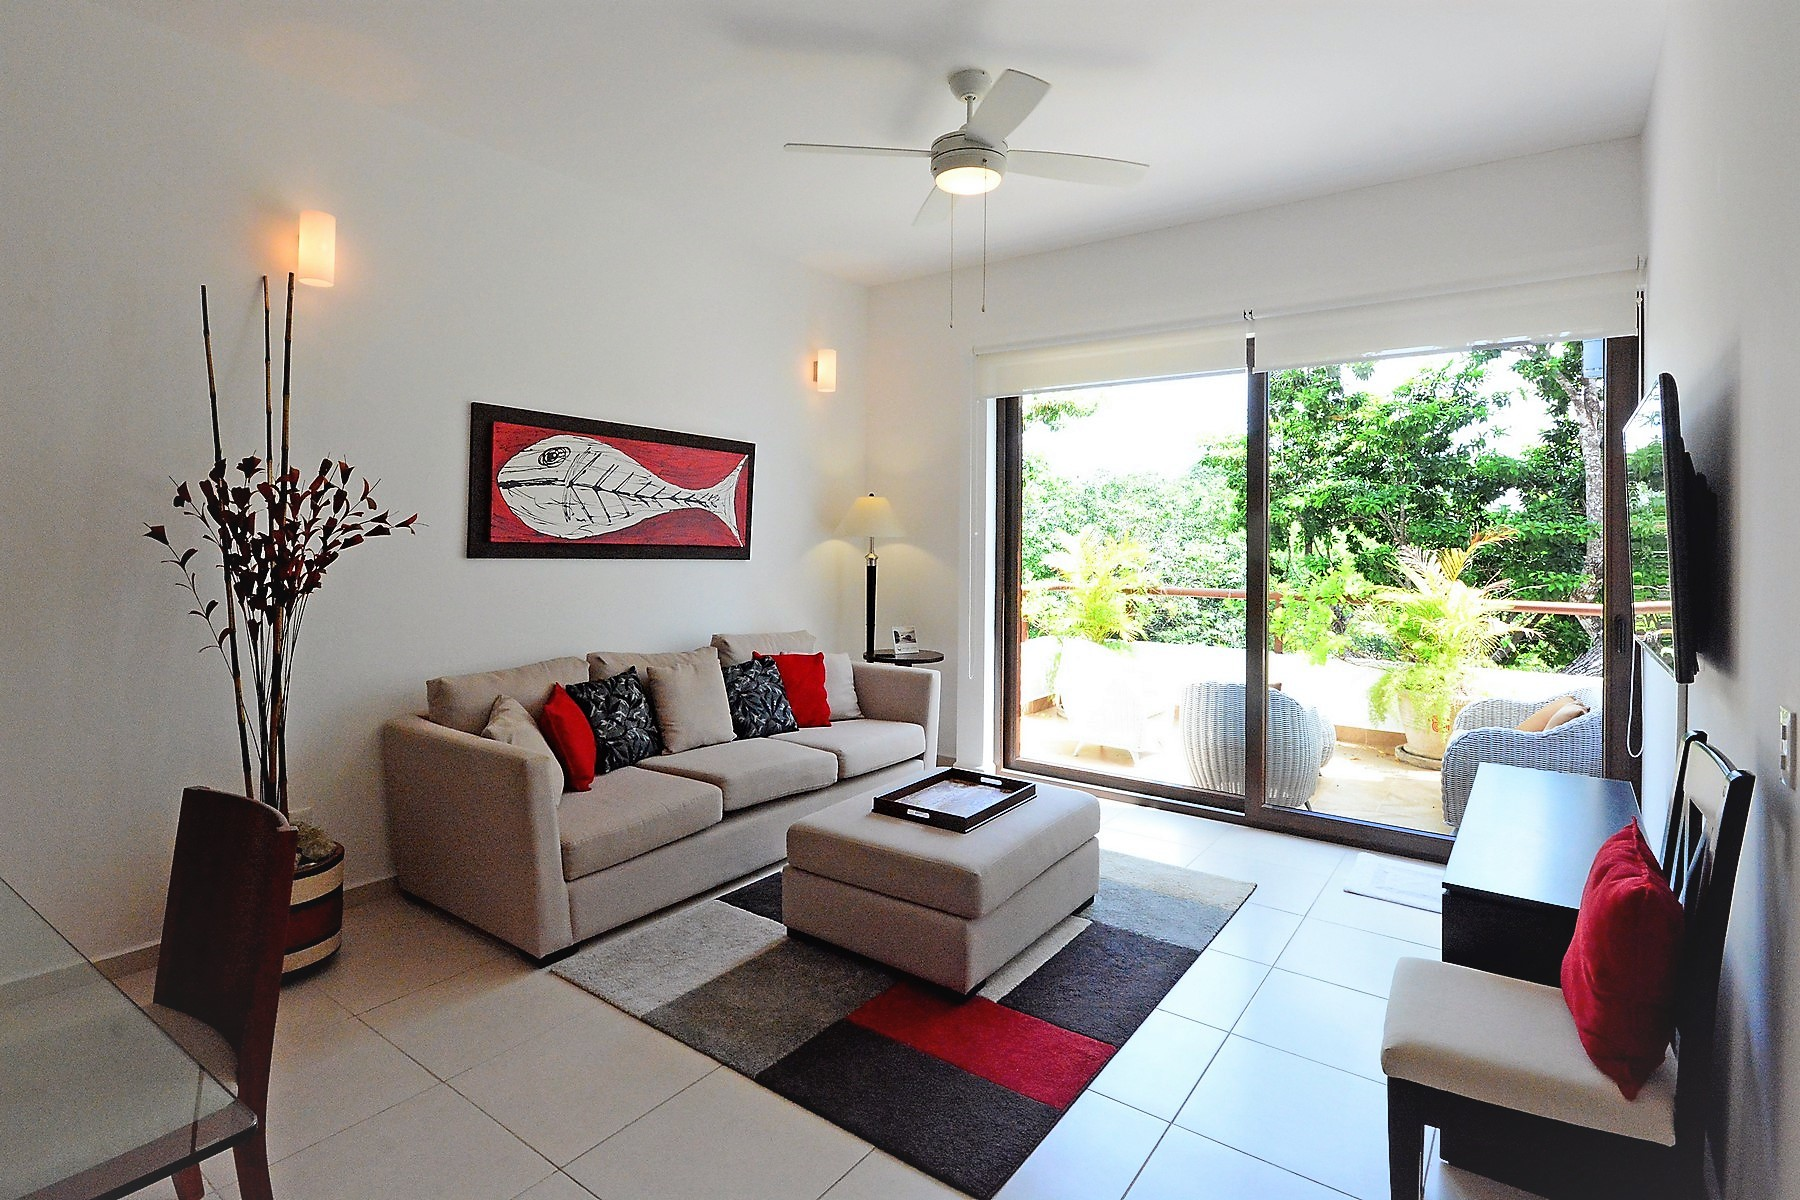 Condominium for Sale at LUXURY PENTHOUSE IN A 5 STAR GOLF COMMUNITY PH Tao Community Carretera federal chetumal- B.Juarez km 250 Akumal, Quintana Roo 77750 Mexico